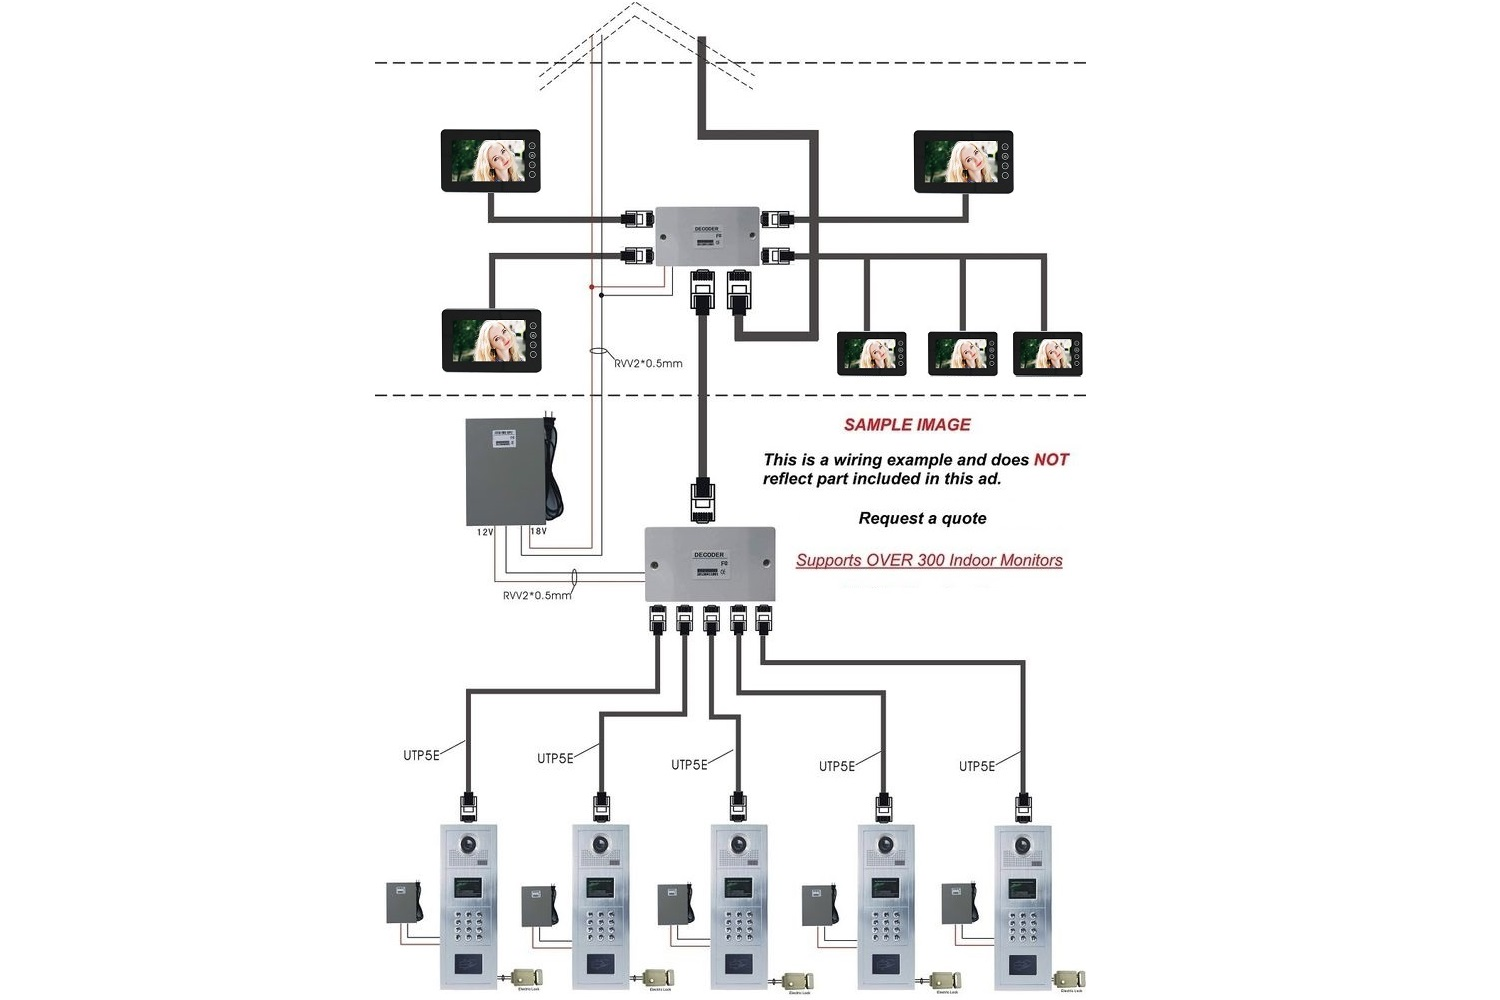 Intercom System Schematic Diagram